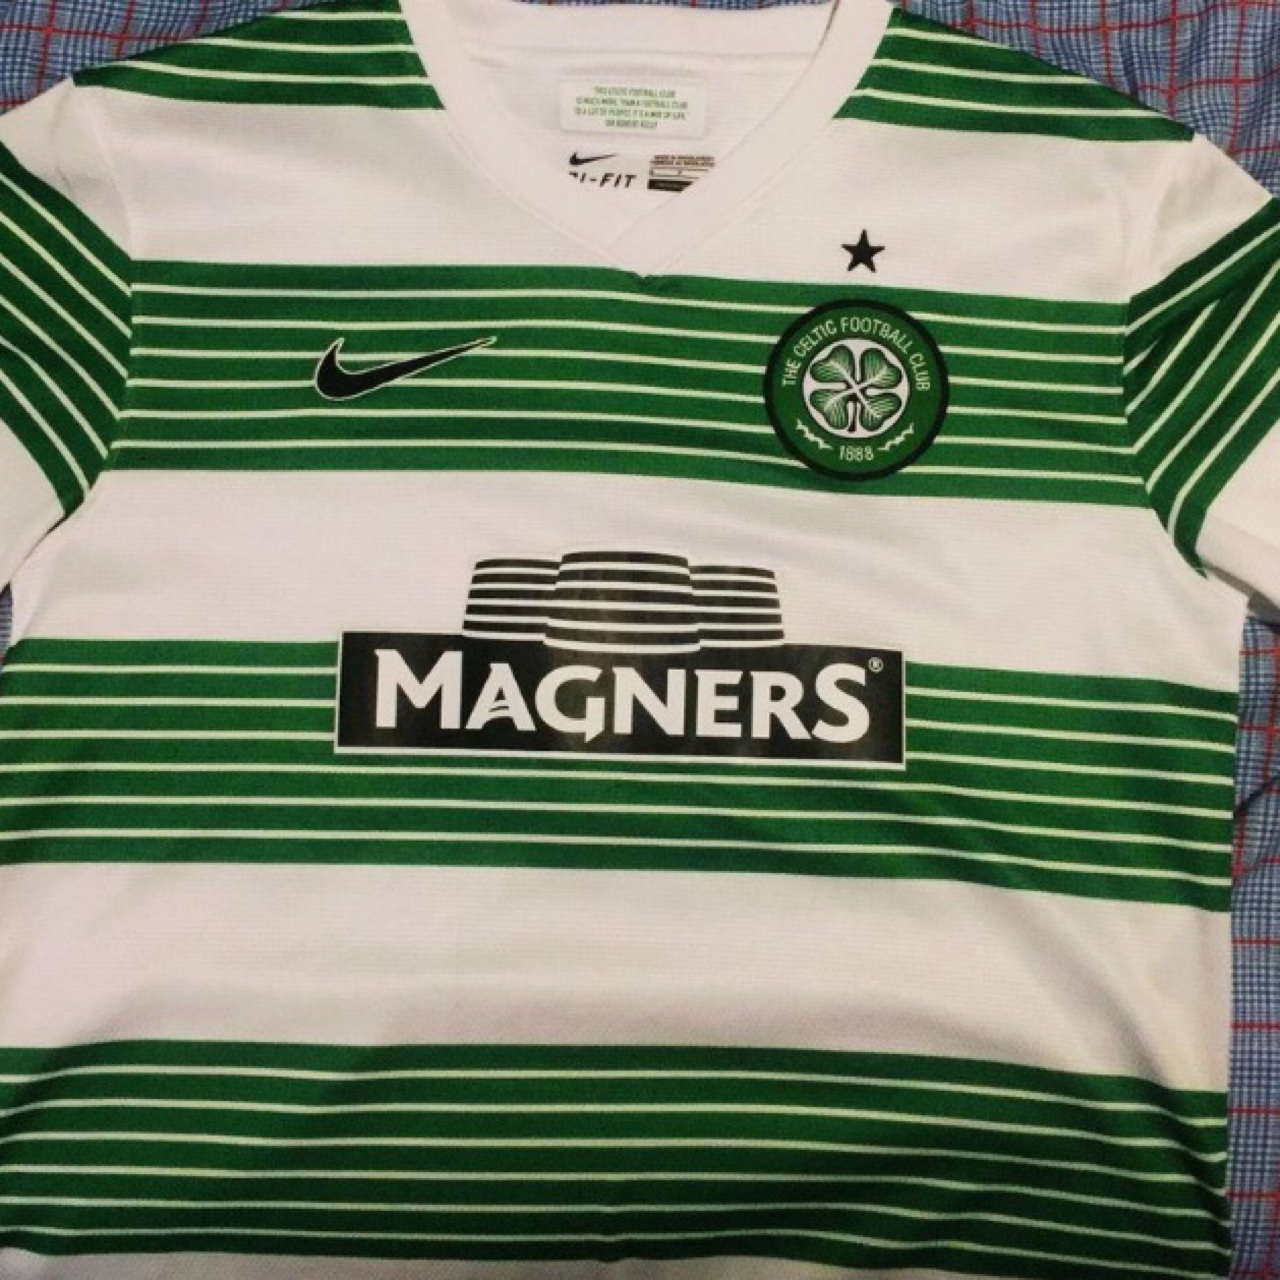 huge discount 92412 1a4a5 Nike Celtic F.C. Jersey. A1 condition 100%... - Depop